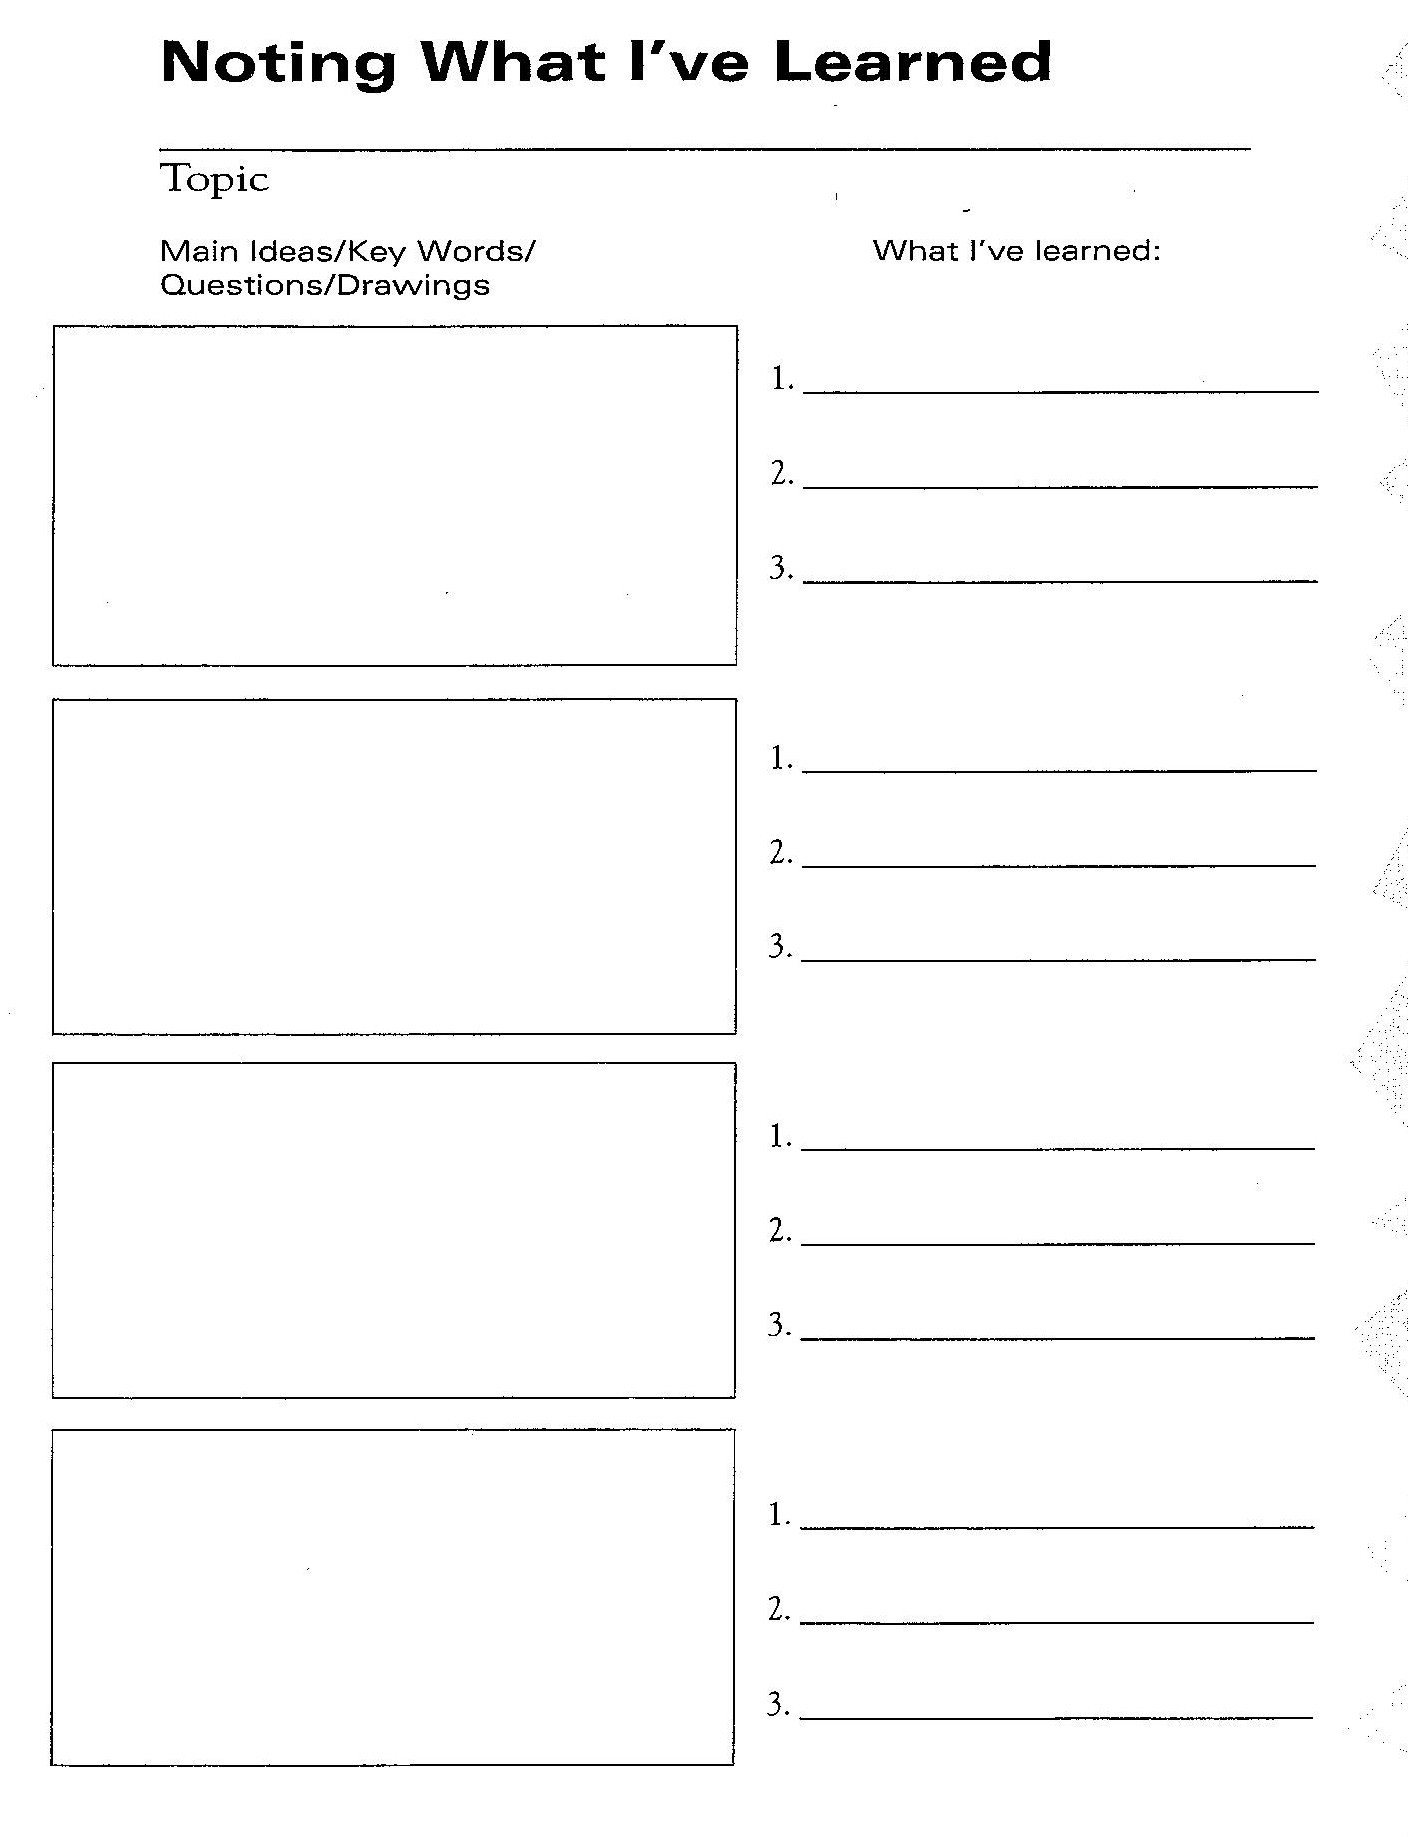 Student Success Mrs Godfreys History Class – Note Taking Template Microsoft Word